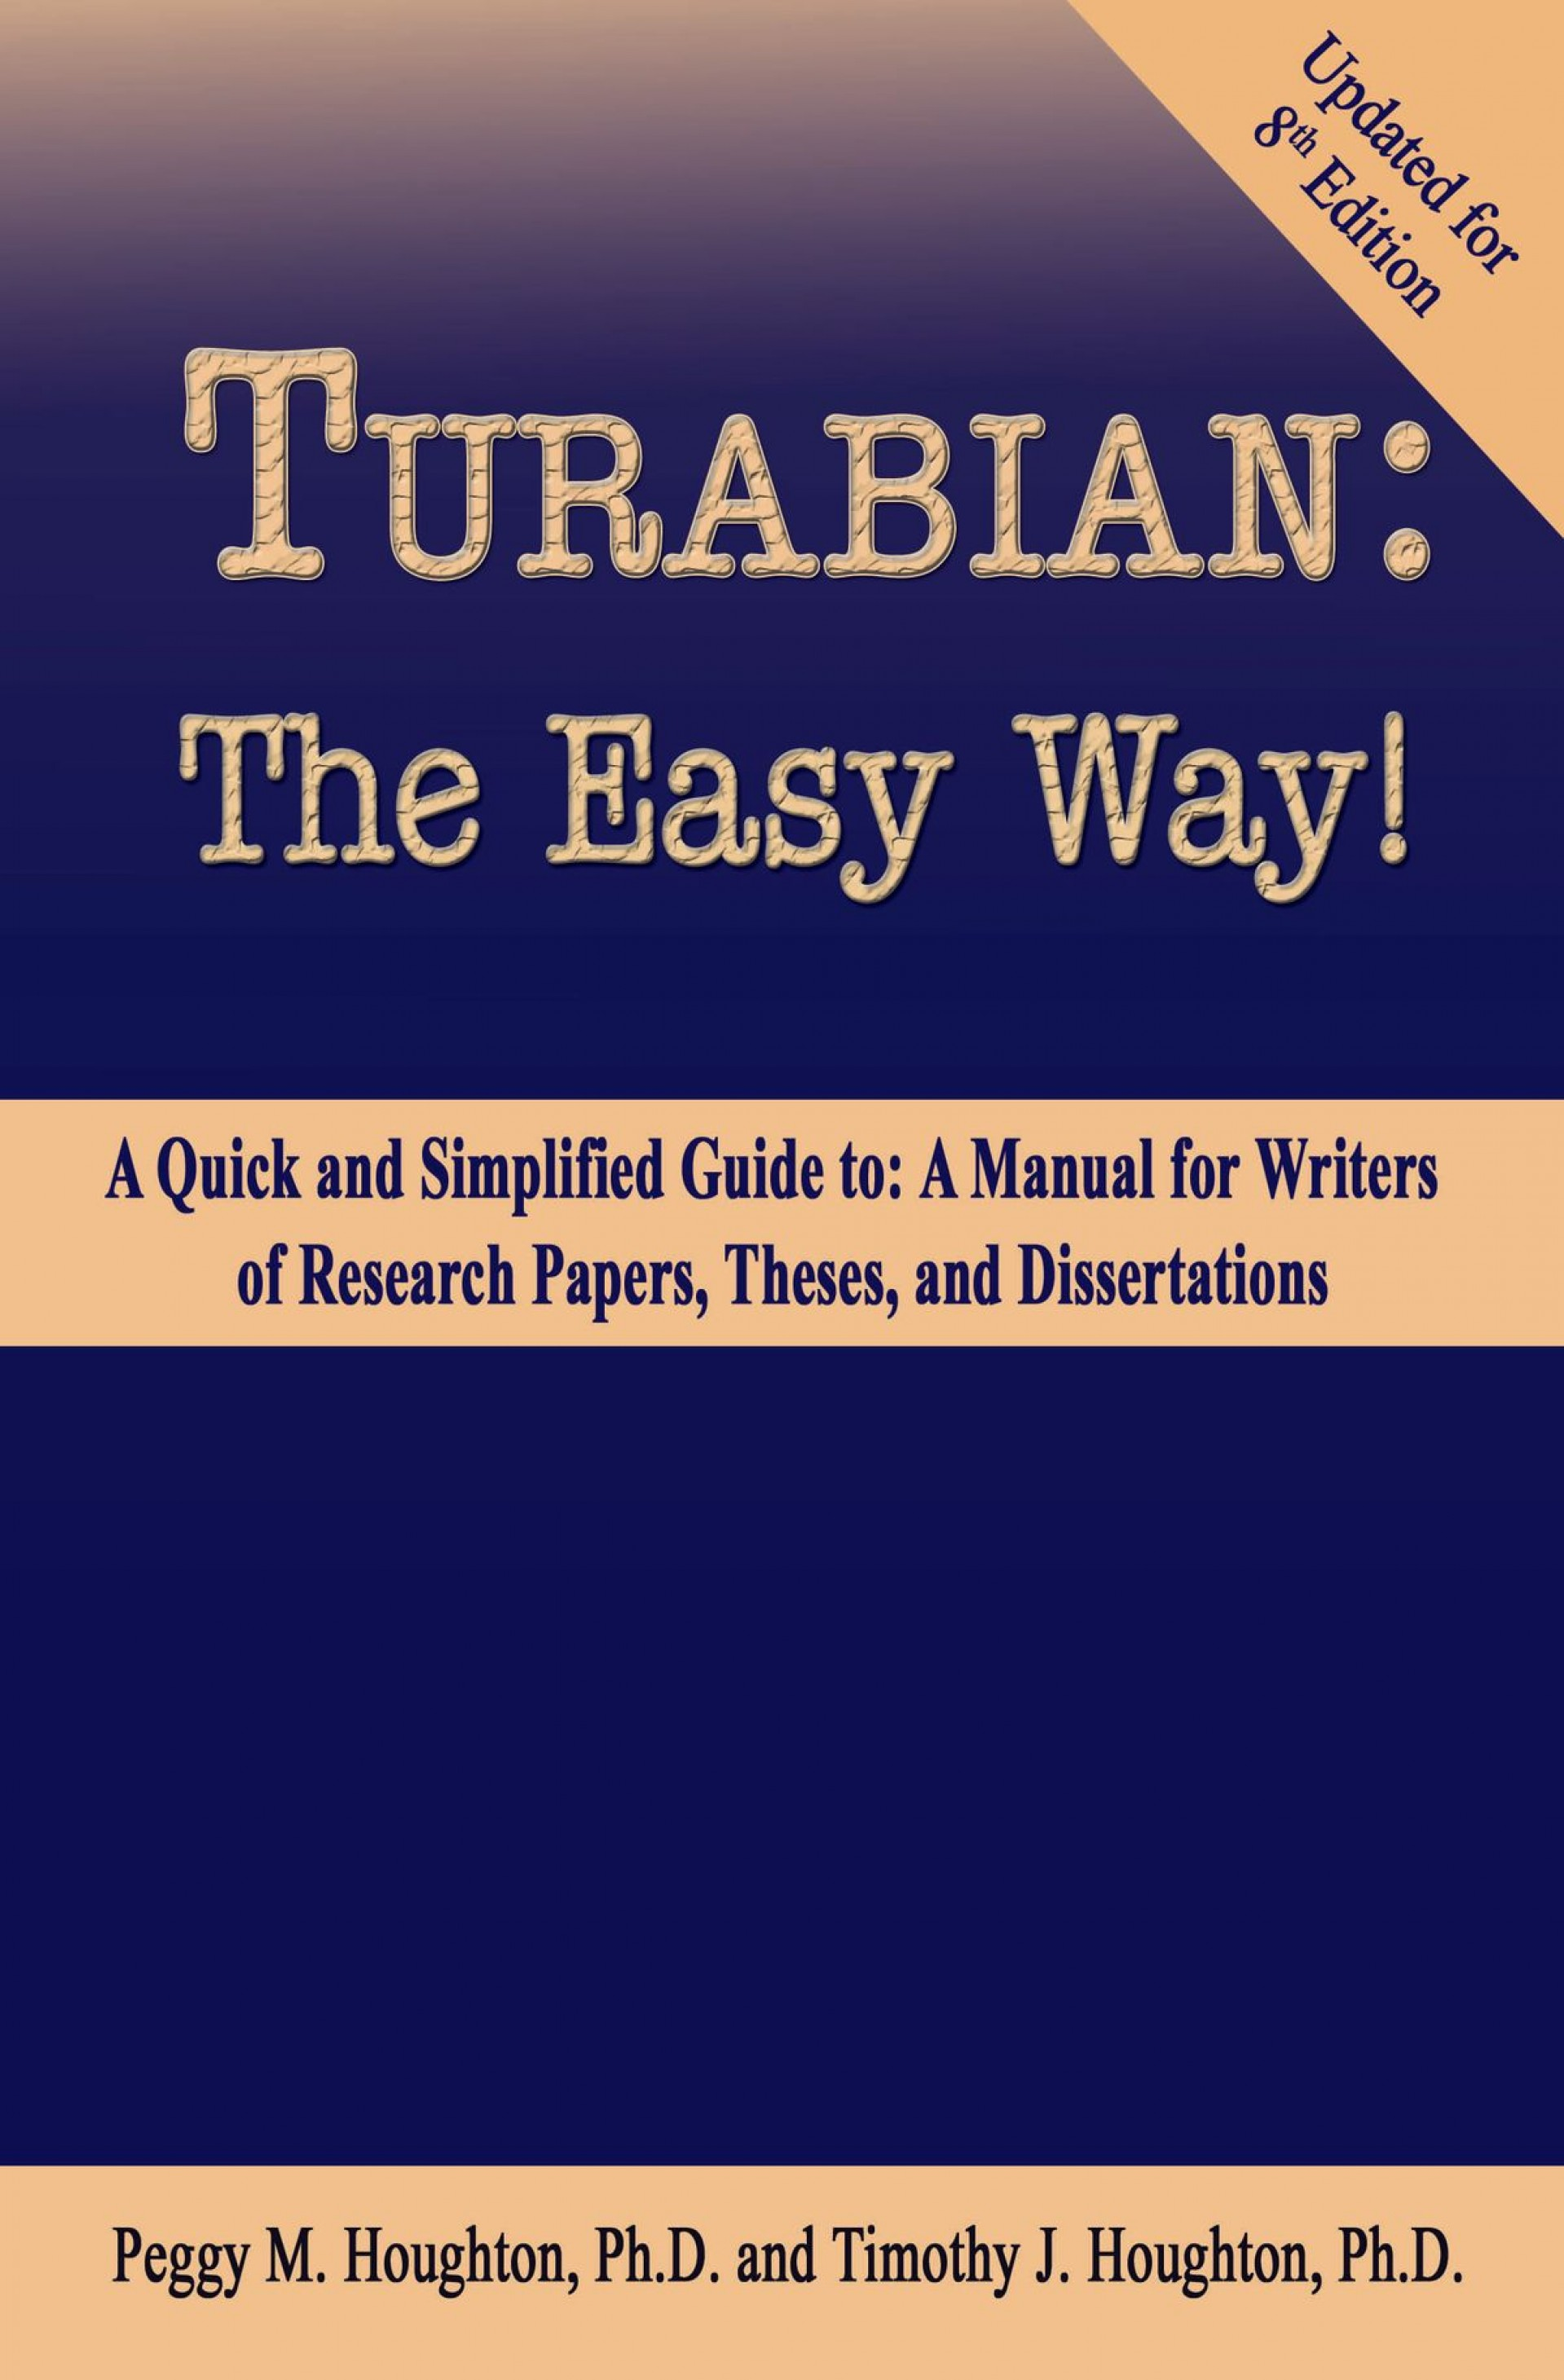 009 Manual For Writers Of Researchs Theses And Dissertations 8th Edition Turabian The Easy Way Staggering A Research Papers Pdf 1920